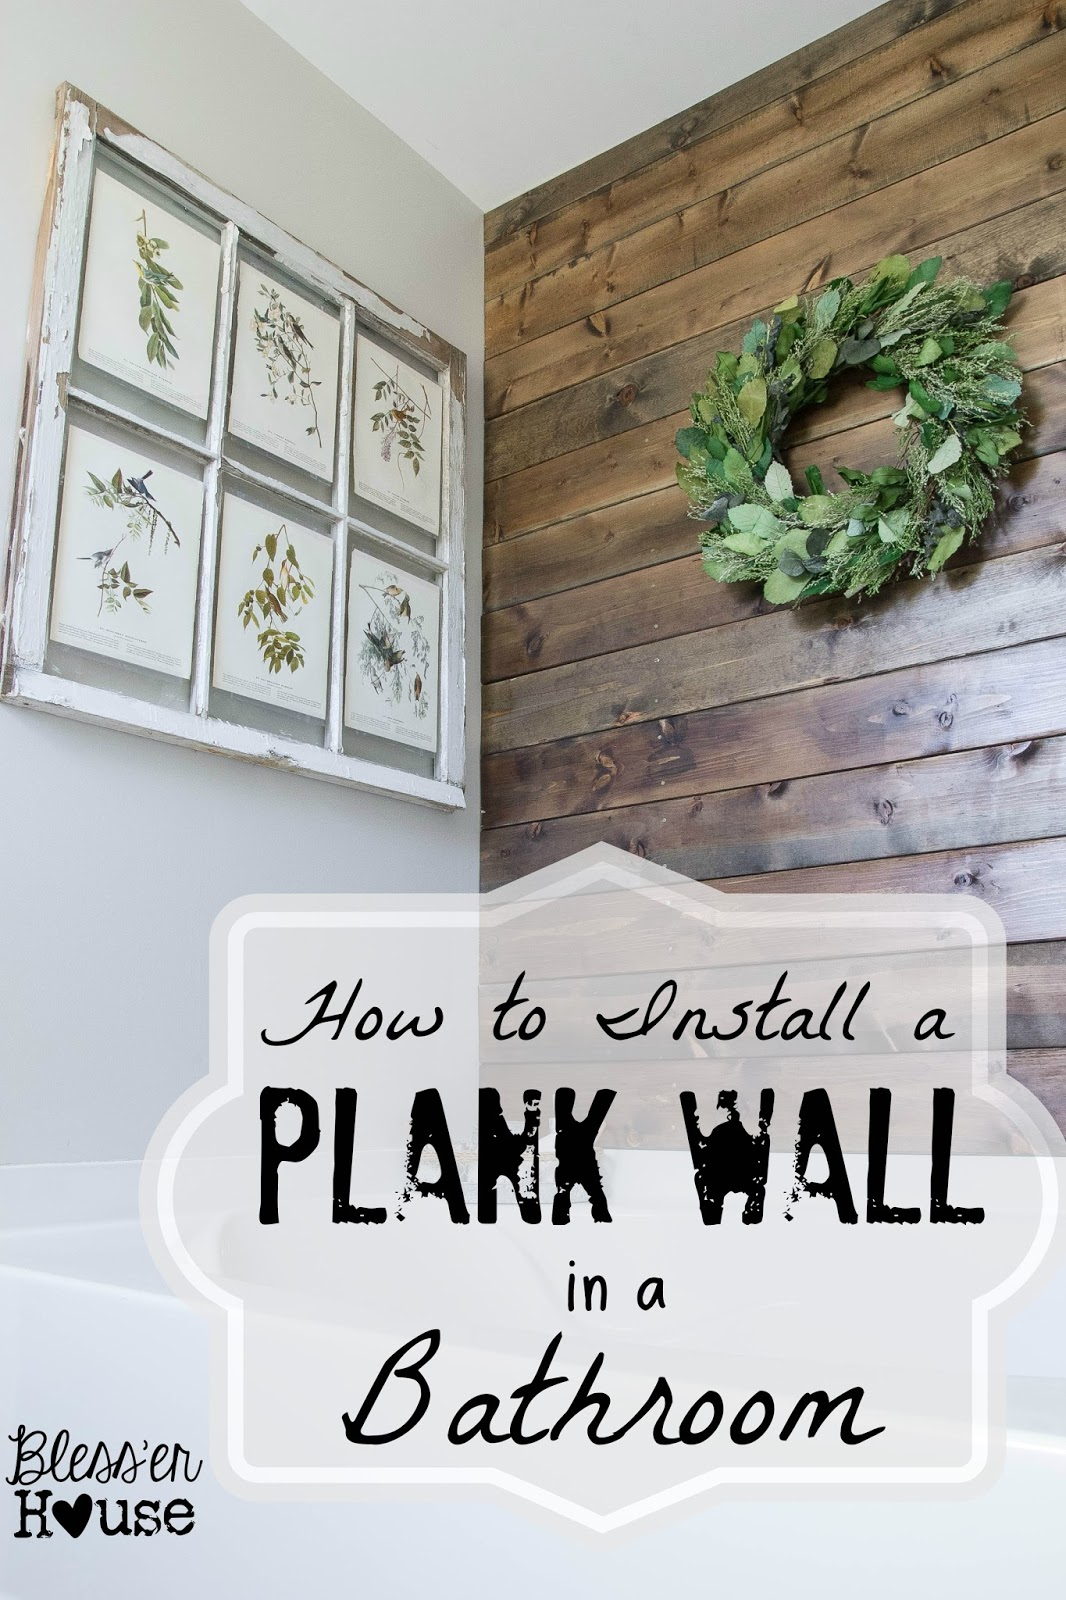 Plank Wall: These 50 Cheap & Easy Farmhouse Decor Ideas will help you save money and transform your space.